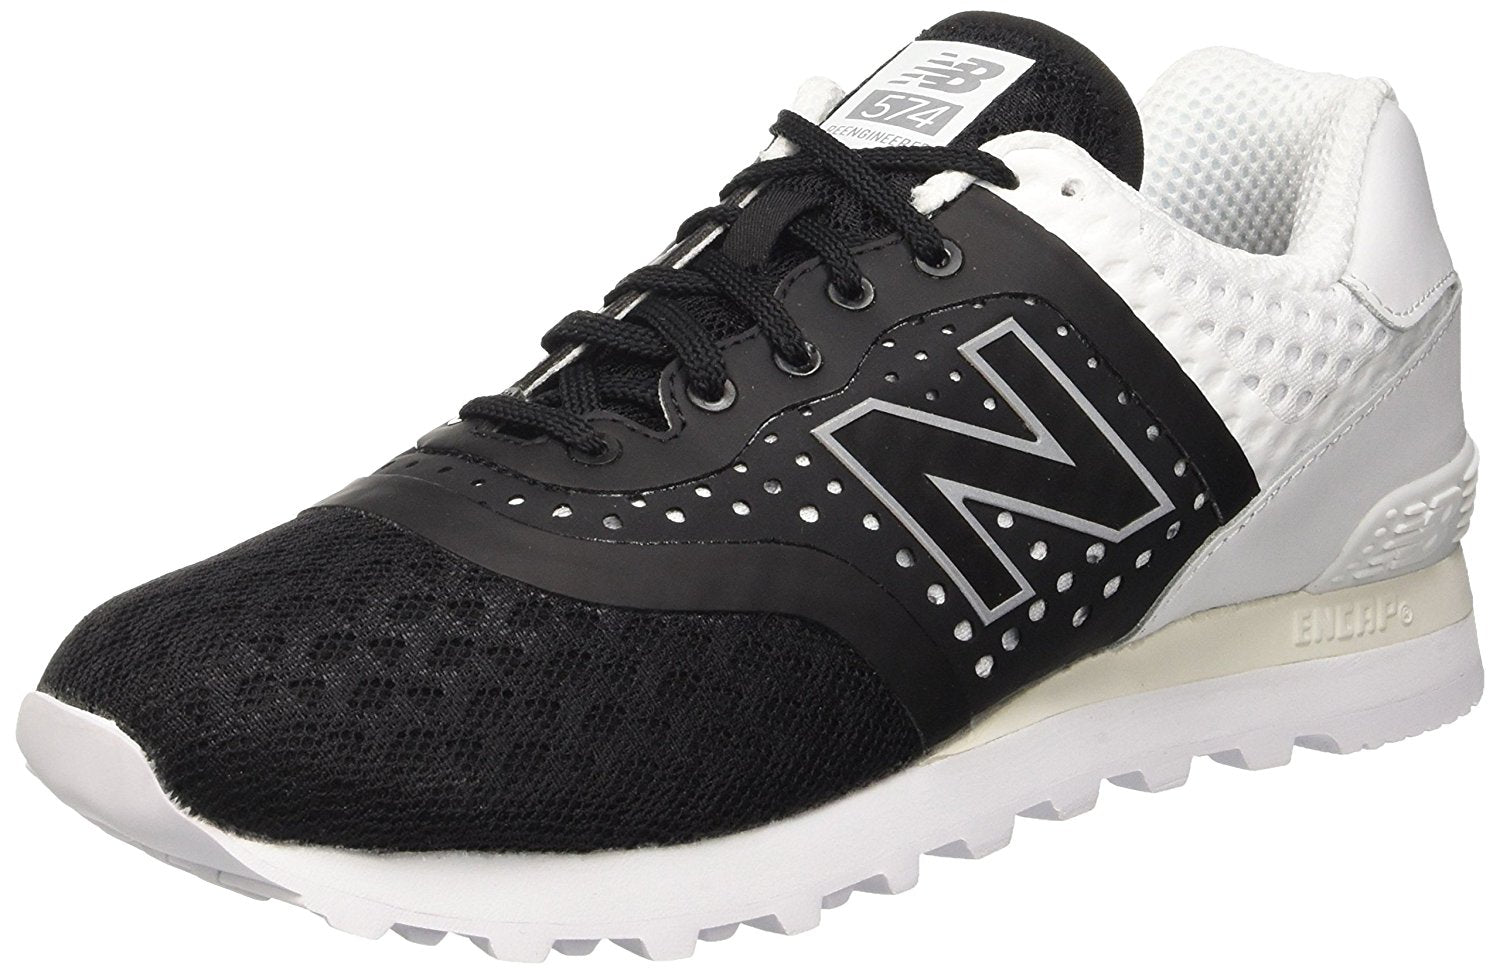 New Balance 574 Black/White Men's Shoes